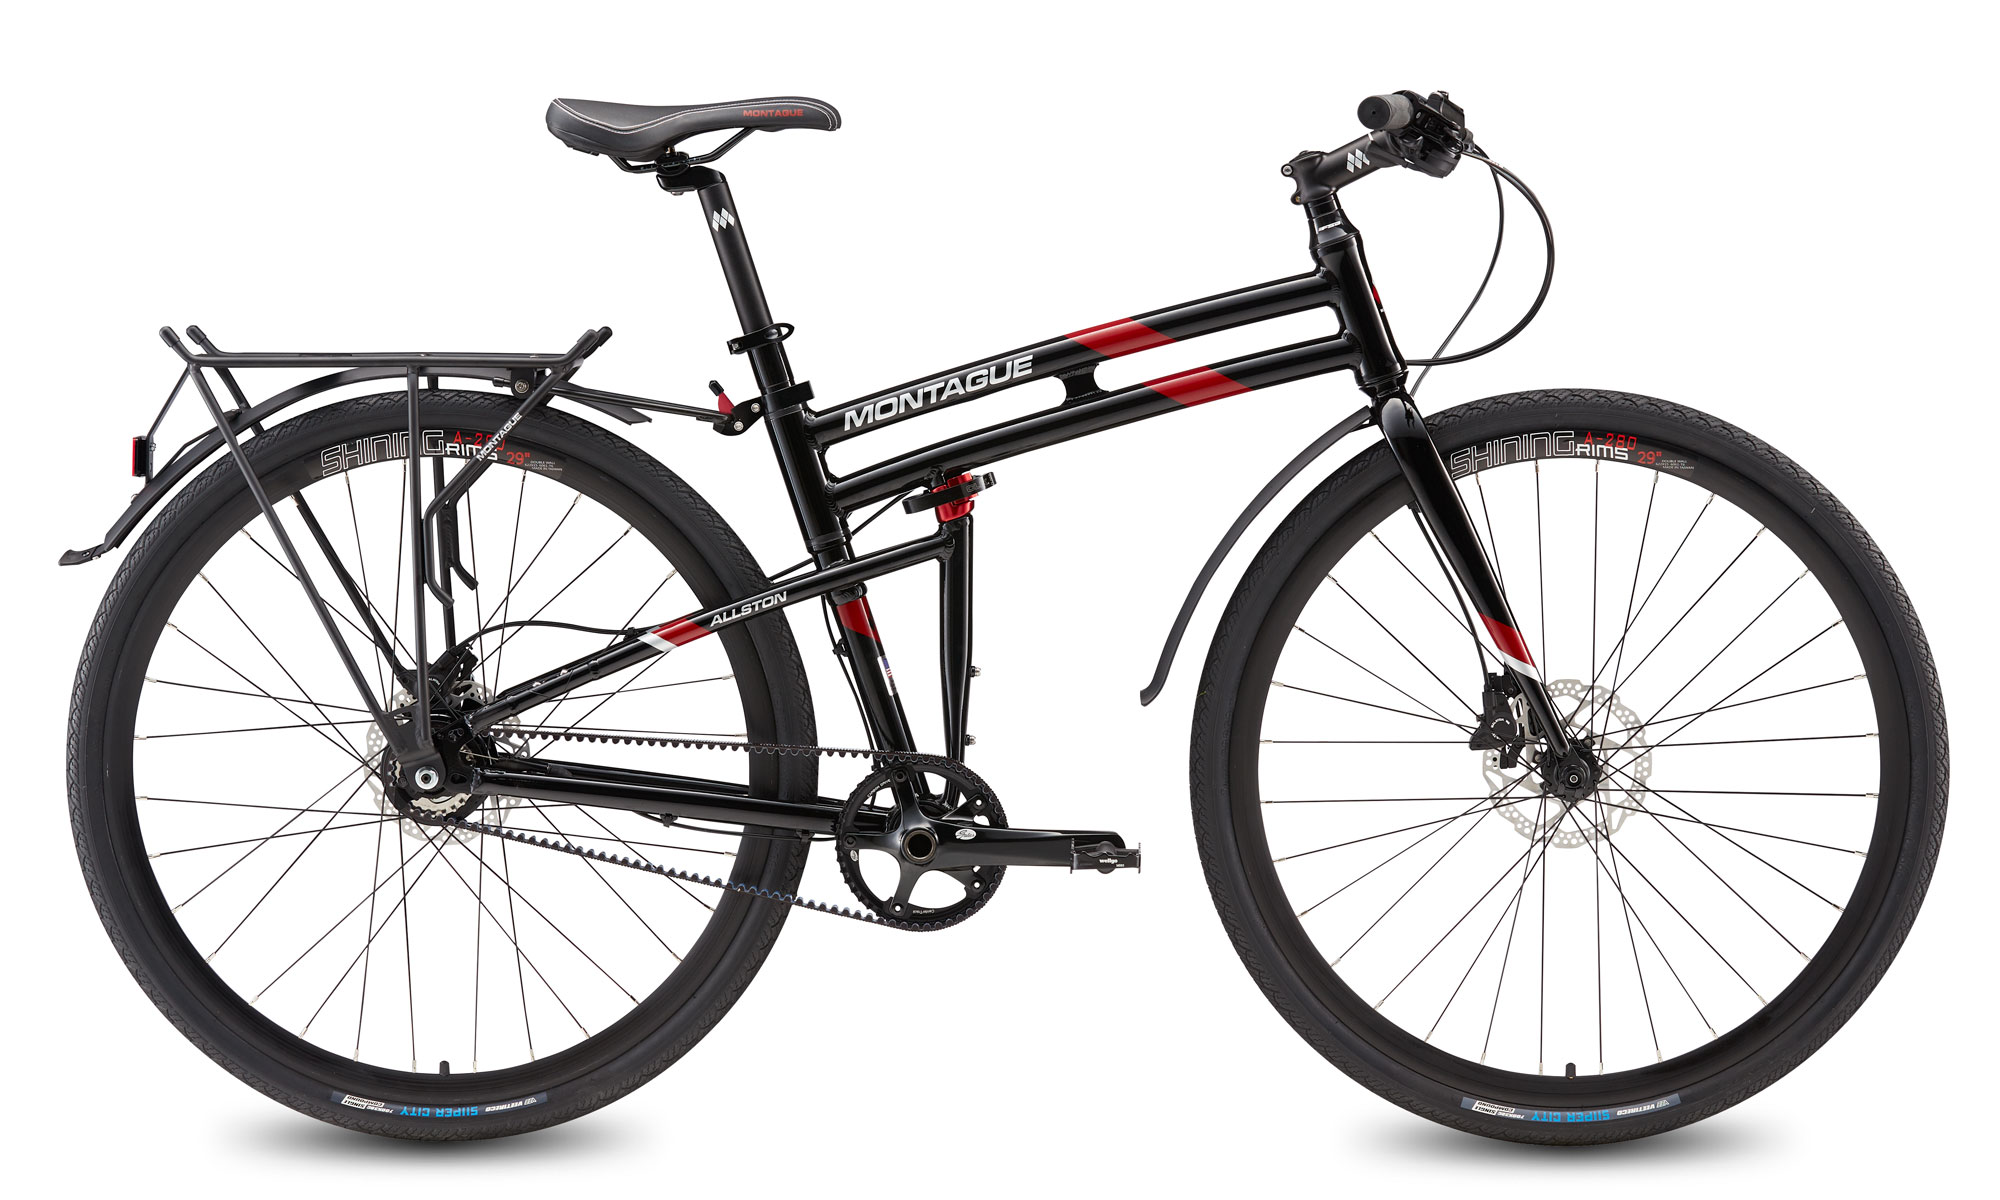 Allston Belt Drive Folding Bike